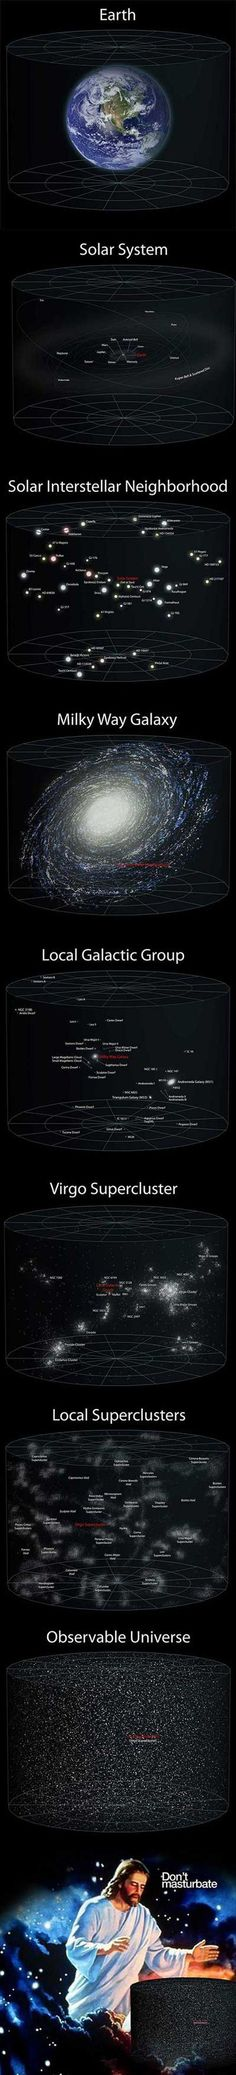 Earth  Solar System  Solar Interstellar Neighborhood  Milky Way Galaxy  Local Galactic Group  Virgo Supercluster  Local Superclusters  Observable Universe  Don't masturbate